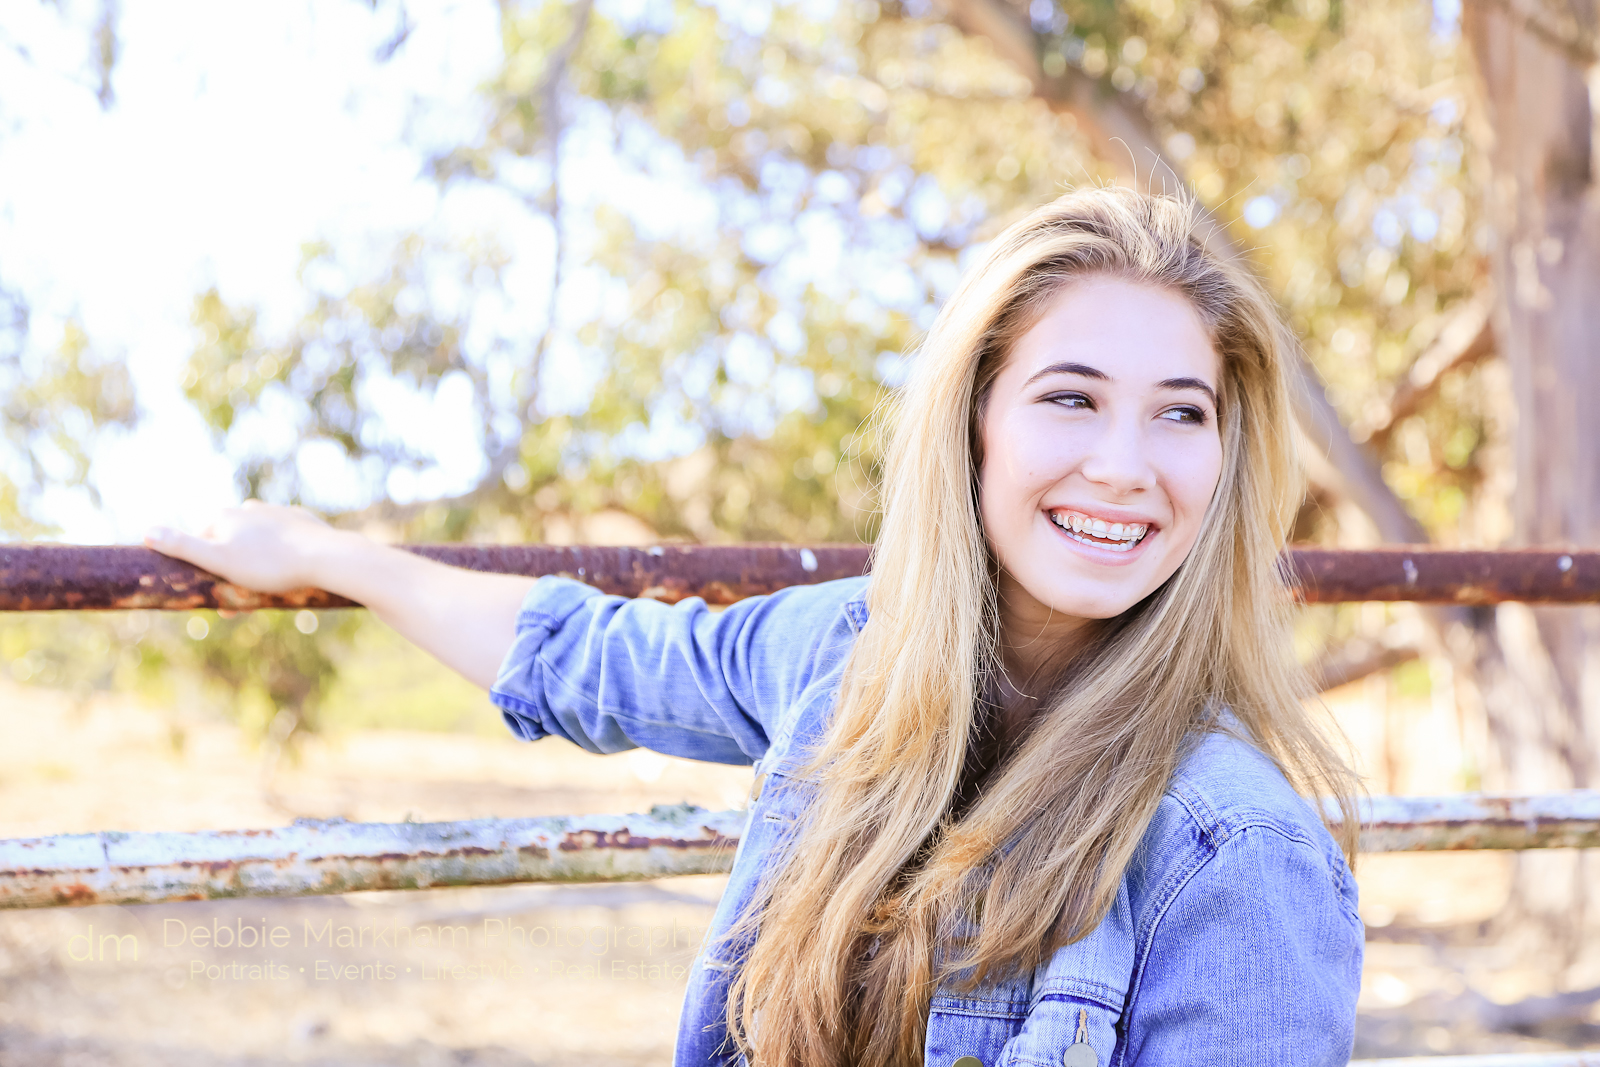 Photographer_Debbie Markham_Senior Portraits_Central Coast_California_Outdoor-2540